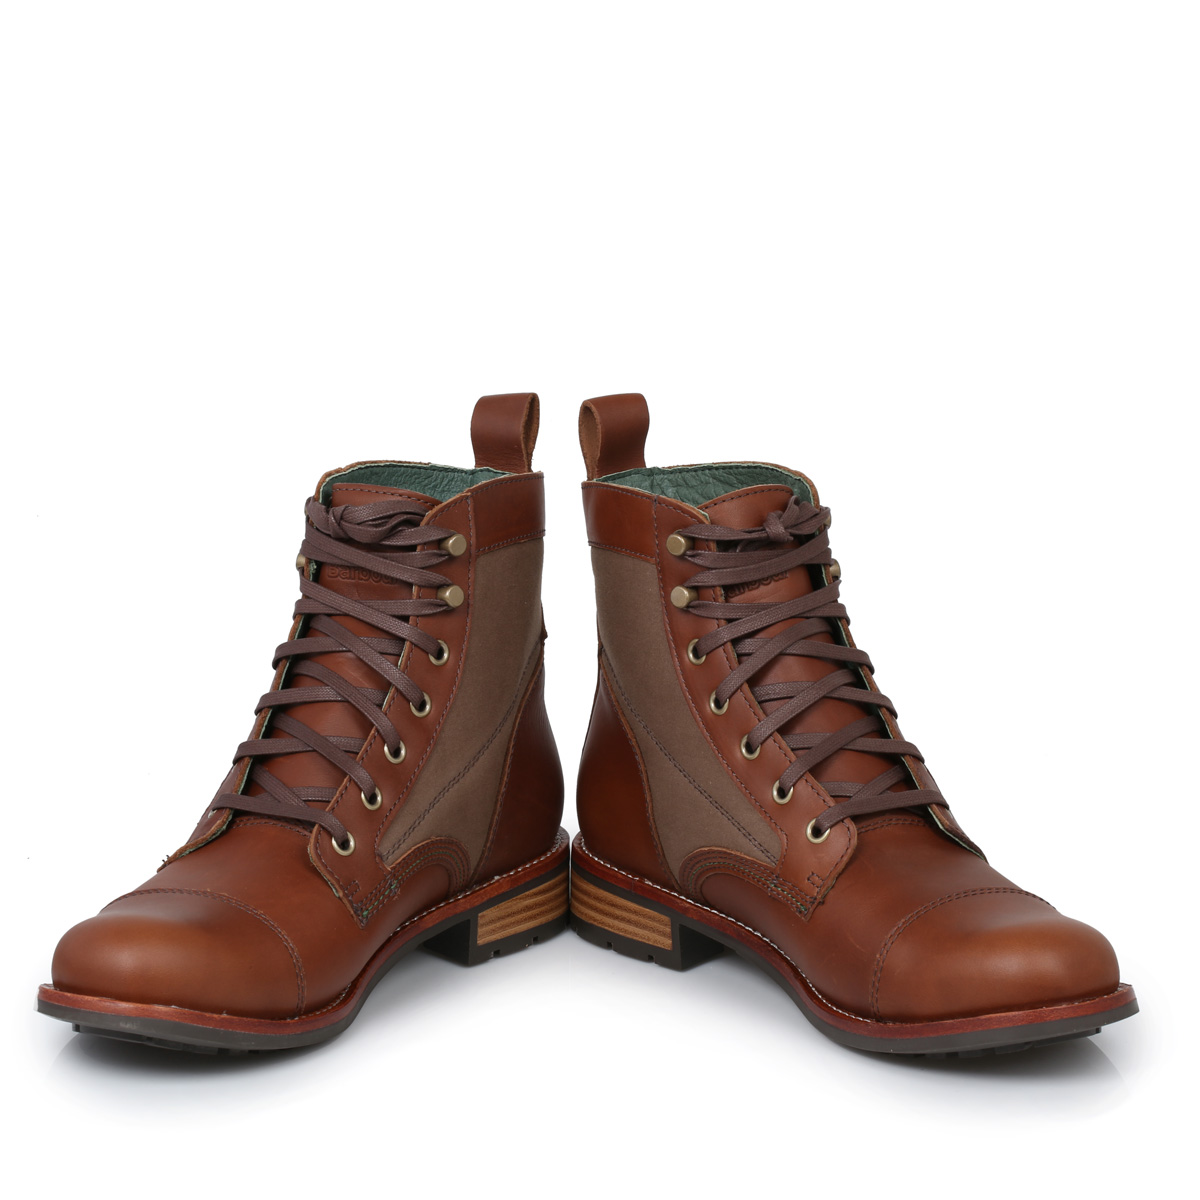 Find great deals on eBay for brown boots men. Shop with confidence.